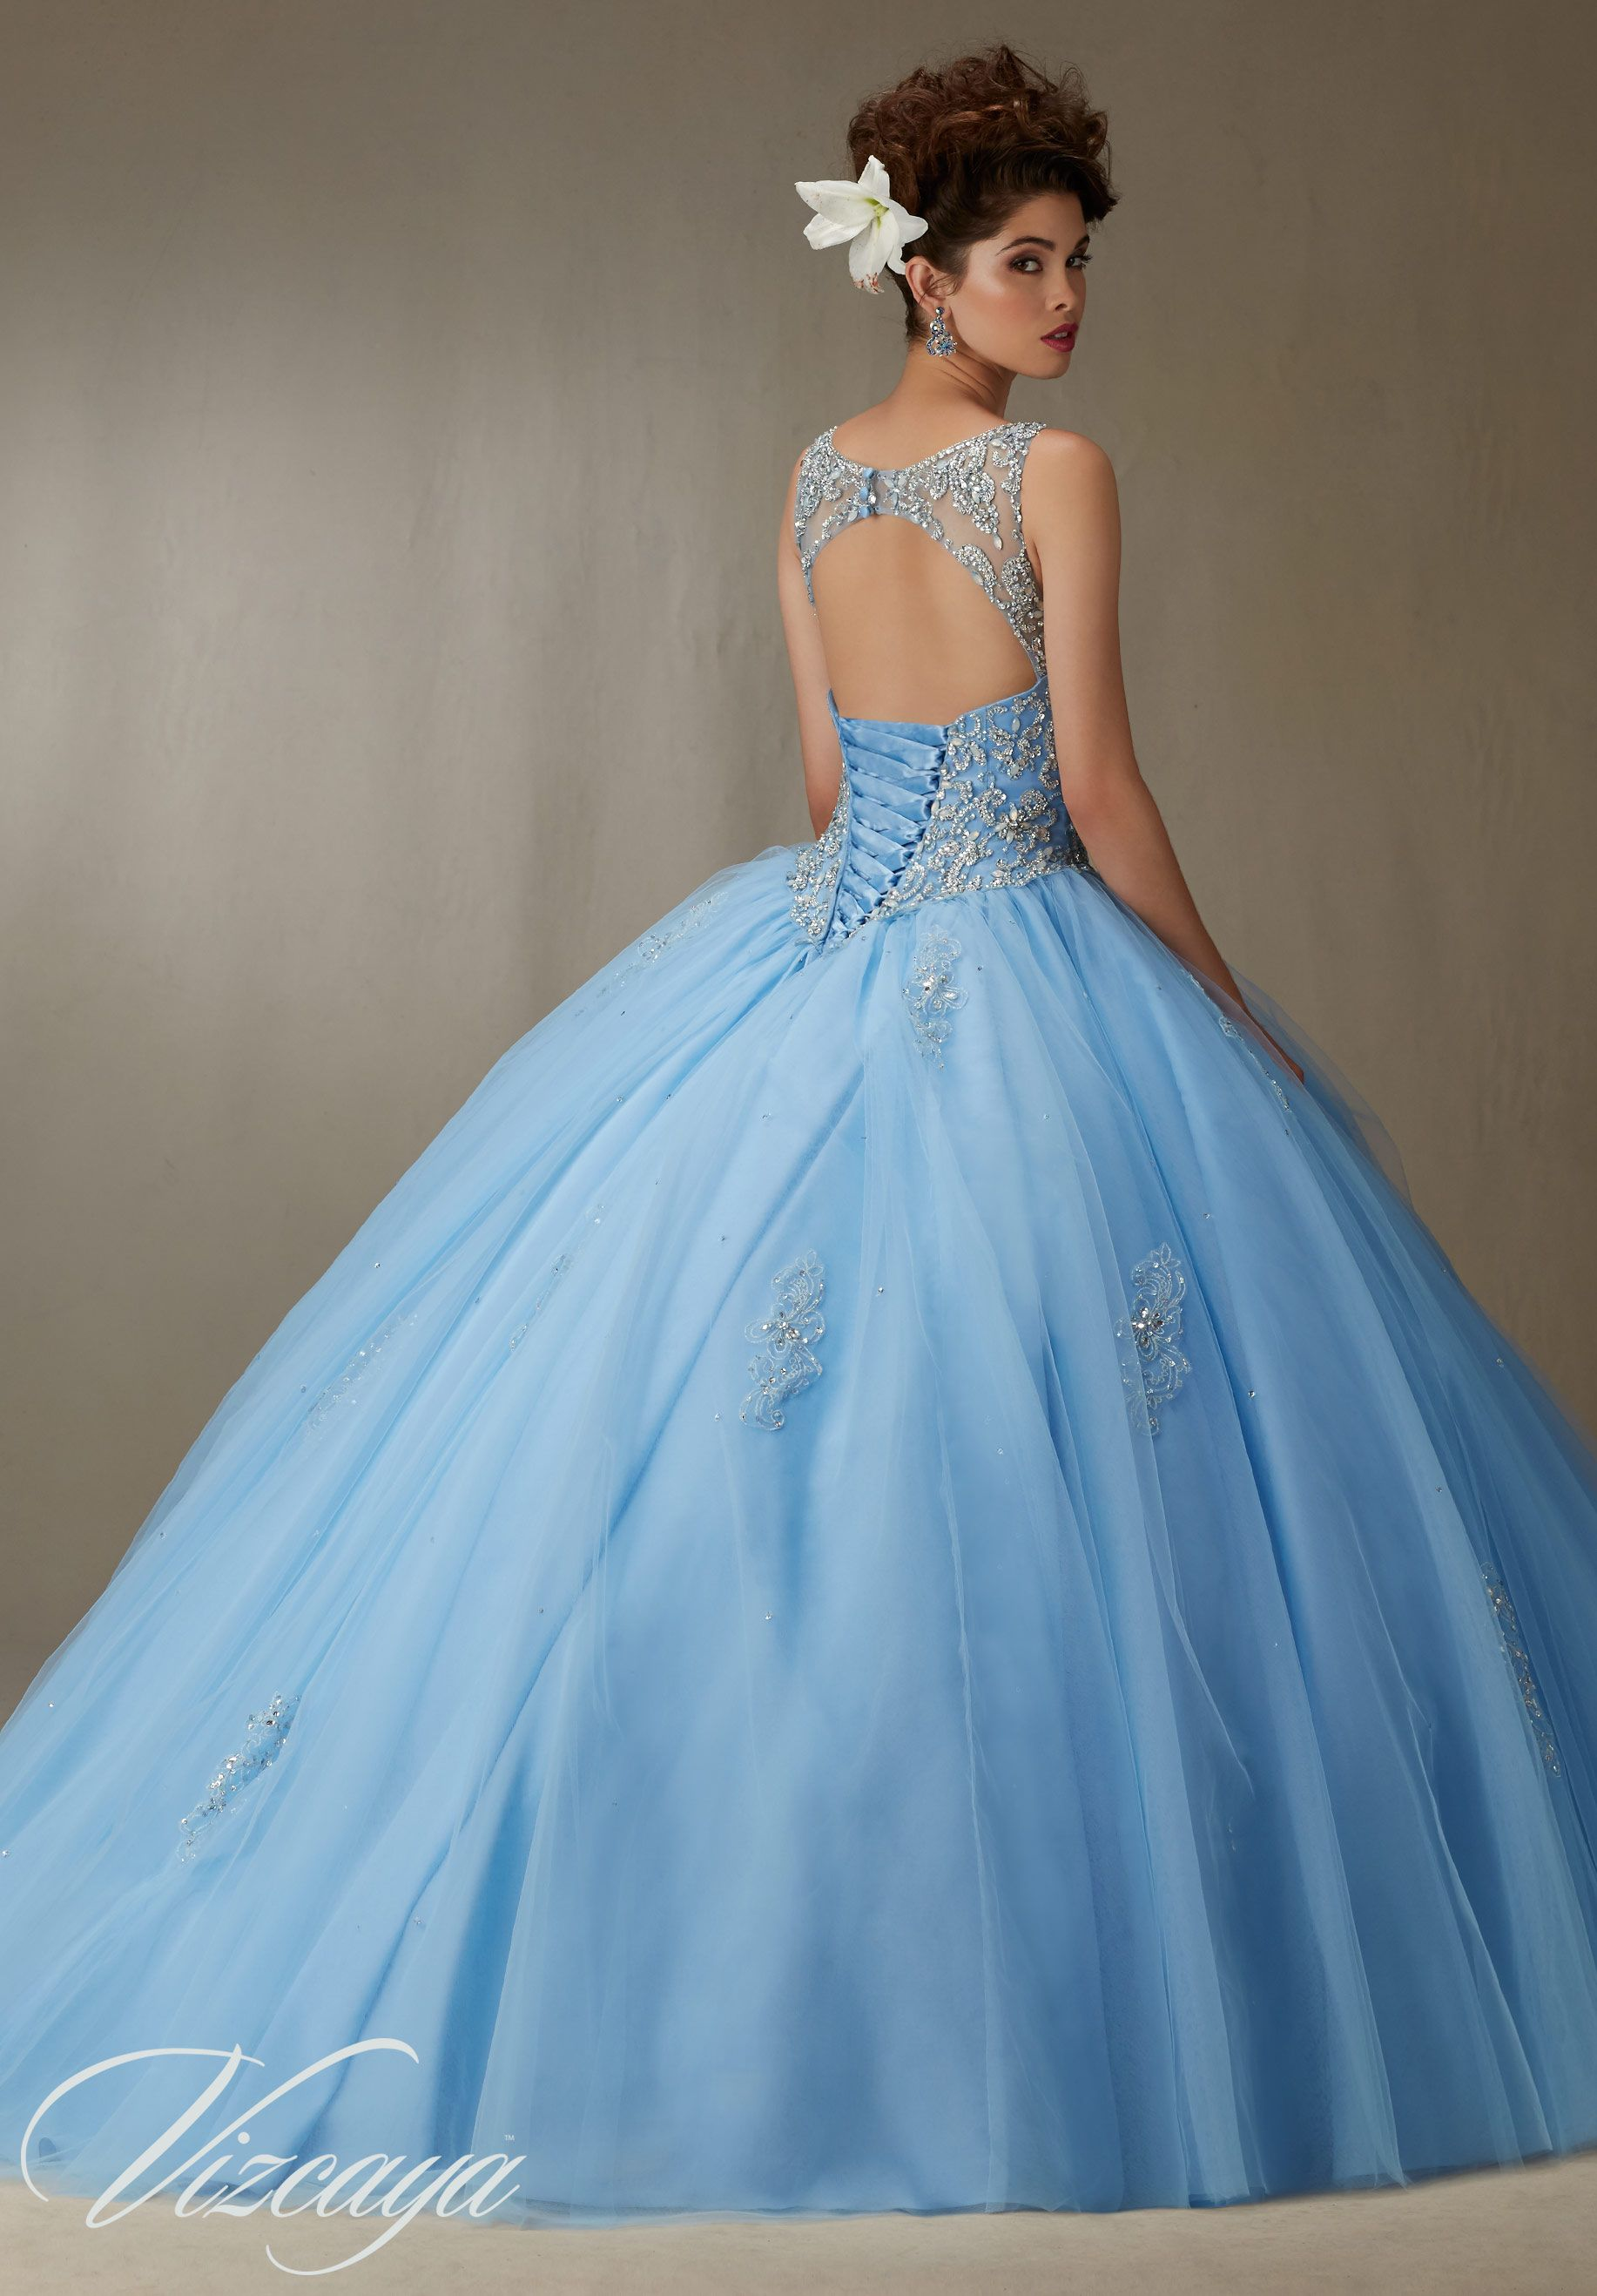 d4c6fcc5af0 Embroidery and Beading on a Tulle Ball Gown Quinceañera Dress ...